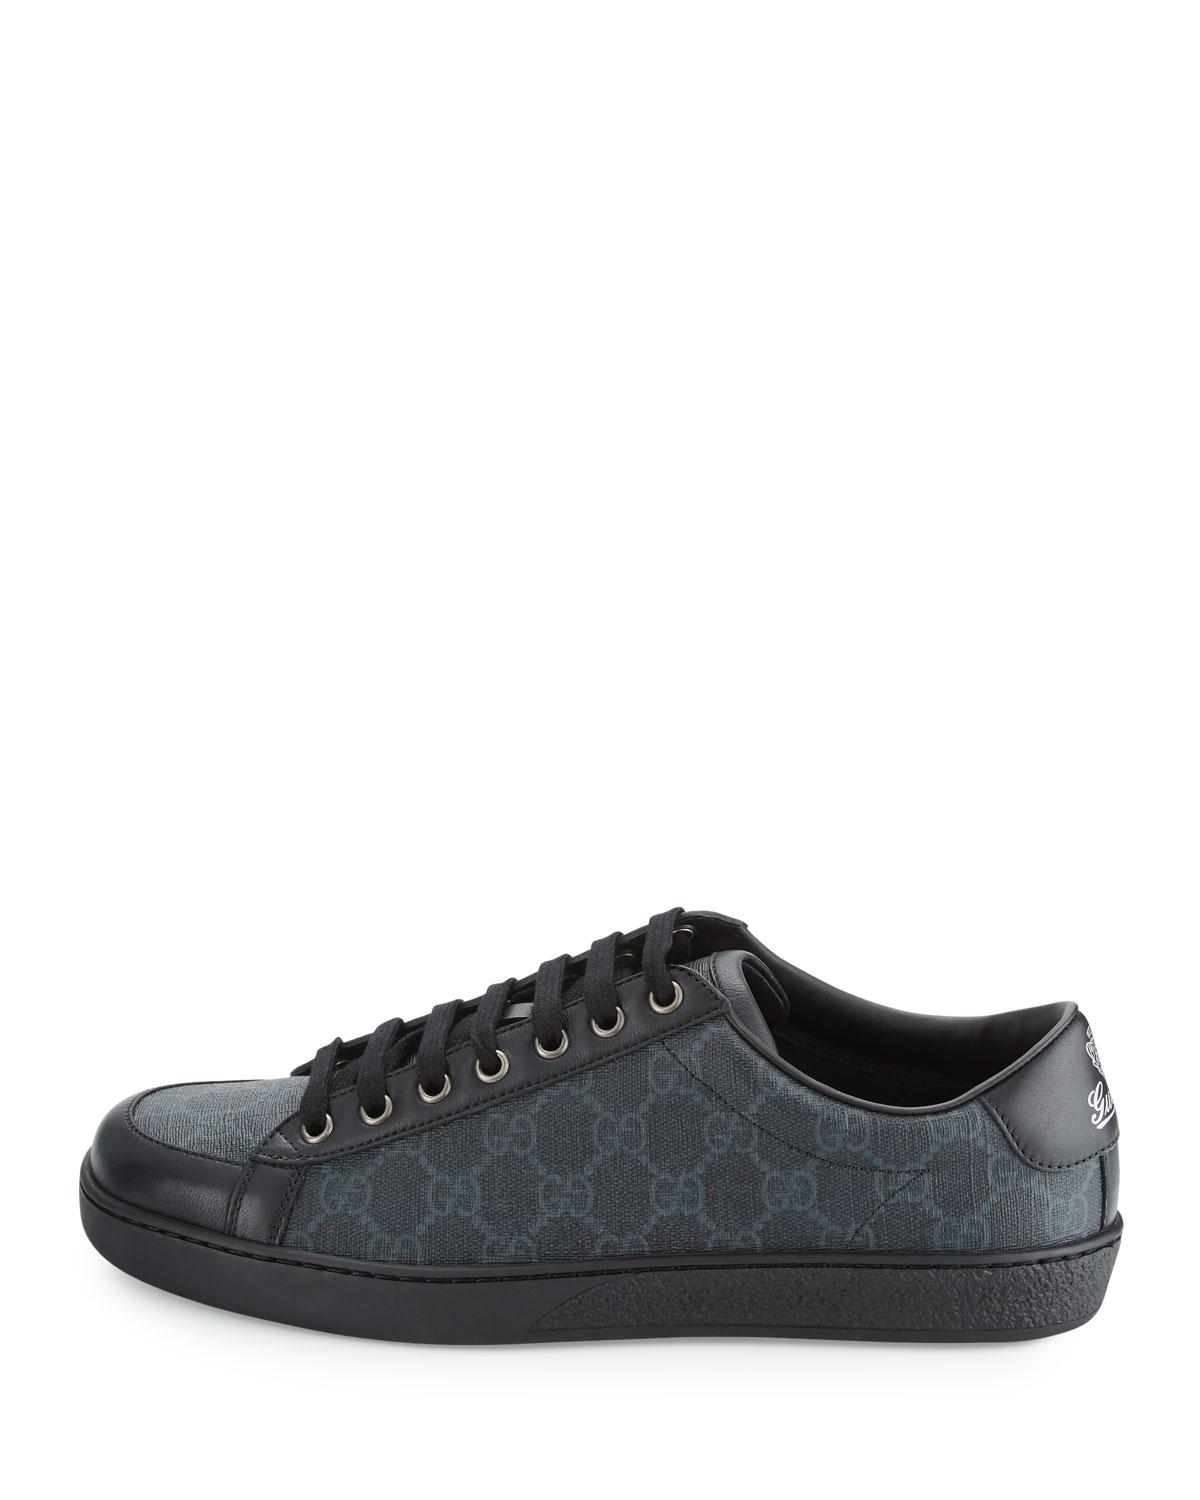 af9e309b057 Lyst - Gucci Brooklyn Gg Supreme Fabric Lace-up Sneaker in Black for Men